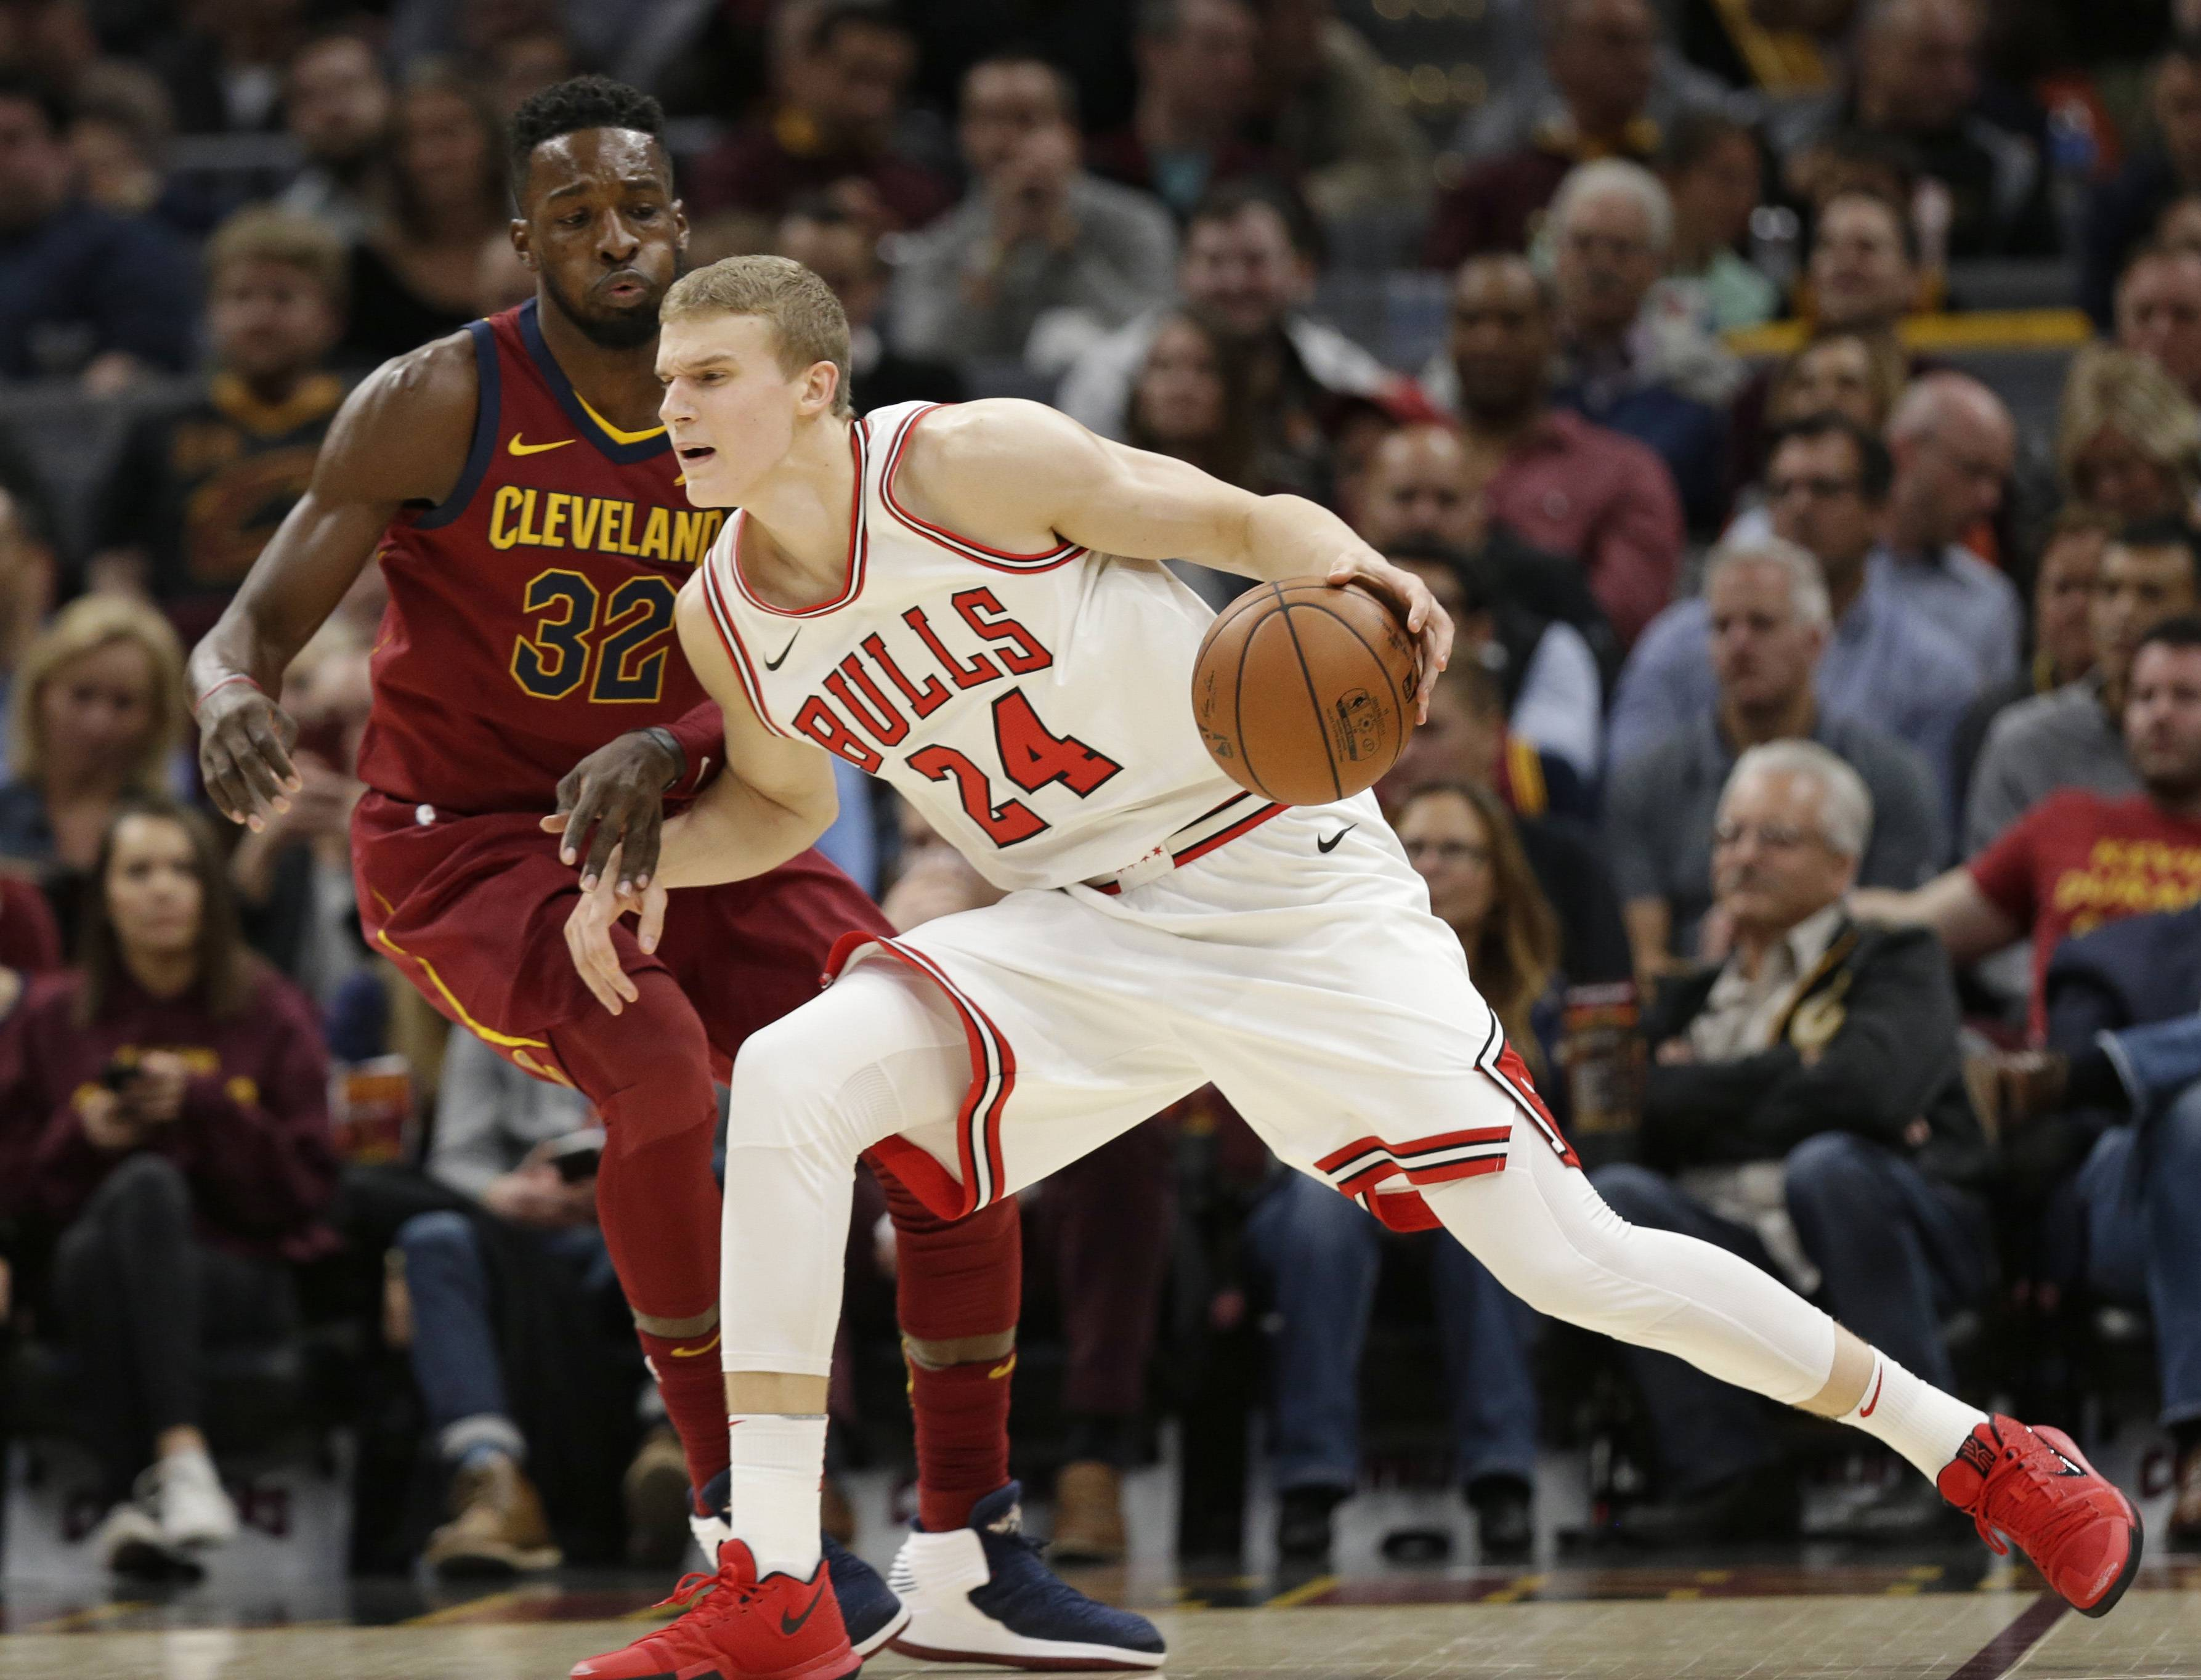 Chicago Bulls' Lauri Markkanen (24), from Finland, drives past Cleveland Cavaliers' Jeff Green (32) in the first half of an NBA basketball game, Tuesday, Oct. 24, 2017, in Cleveland. (AP Photo/Tony Dejak)